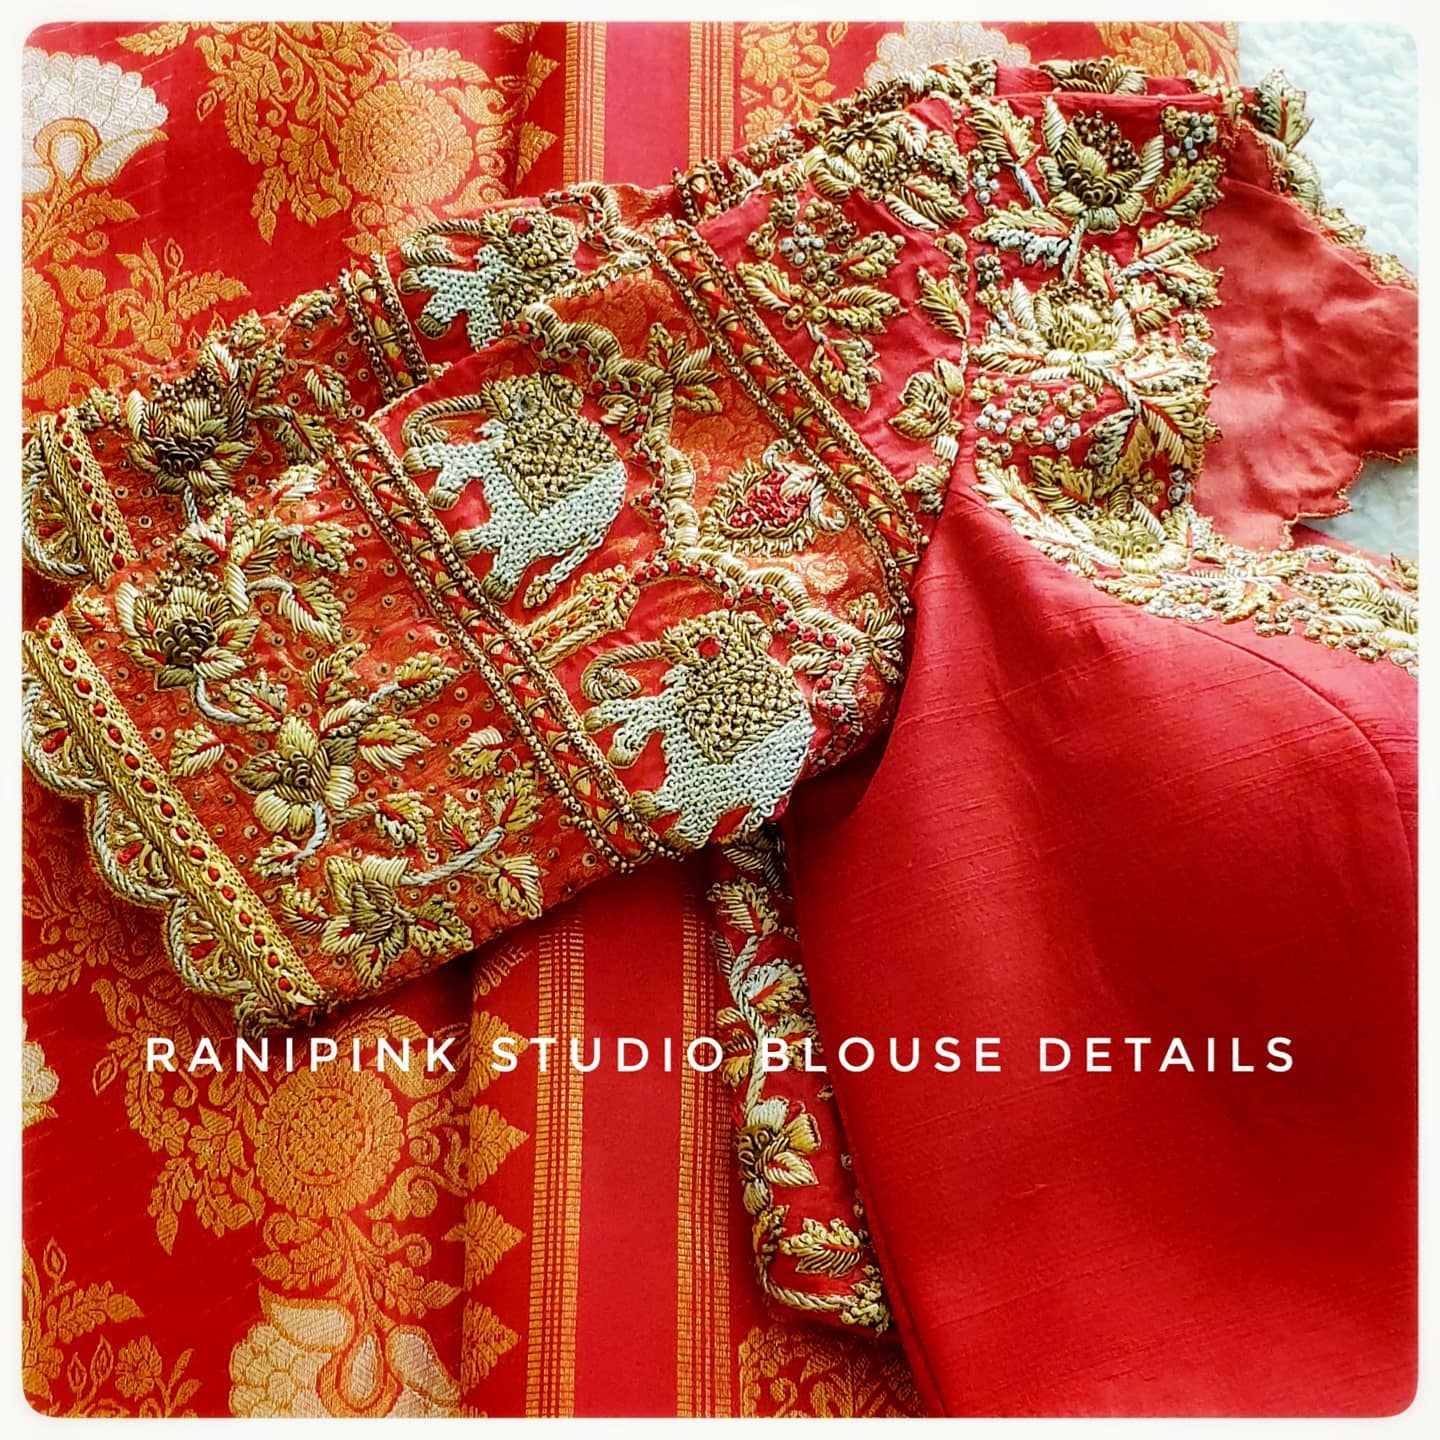 Gorgeous red color wedding bridal blouse with elephant and floral design hand embroidery maggam work.   This amazing Reception Blouse from Rani pink studio is a definite head turner. For appointments call or whatapp  at 8884620620. 2021-04-03